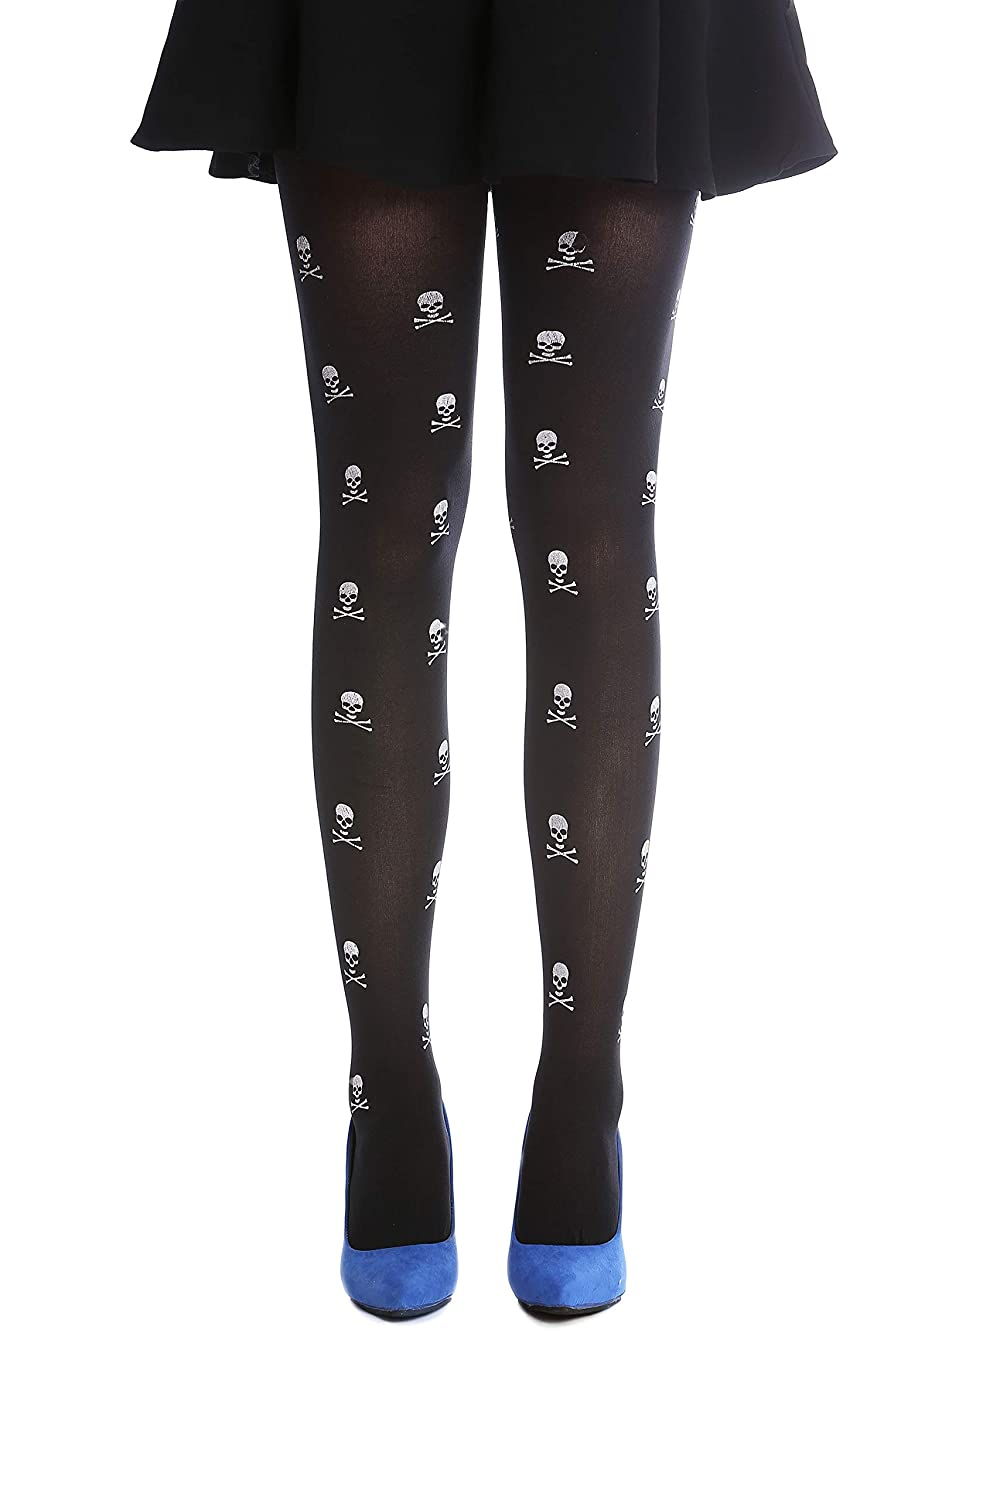 463f5dab29c5c DRESS ME UP - W-018 Lady's Halloween Pantyhose Tights black white skull and  bones design Punk Emo Goth Witch Pirate: Amazon.co.uk: Toys & Games